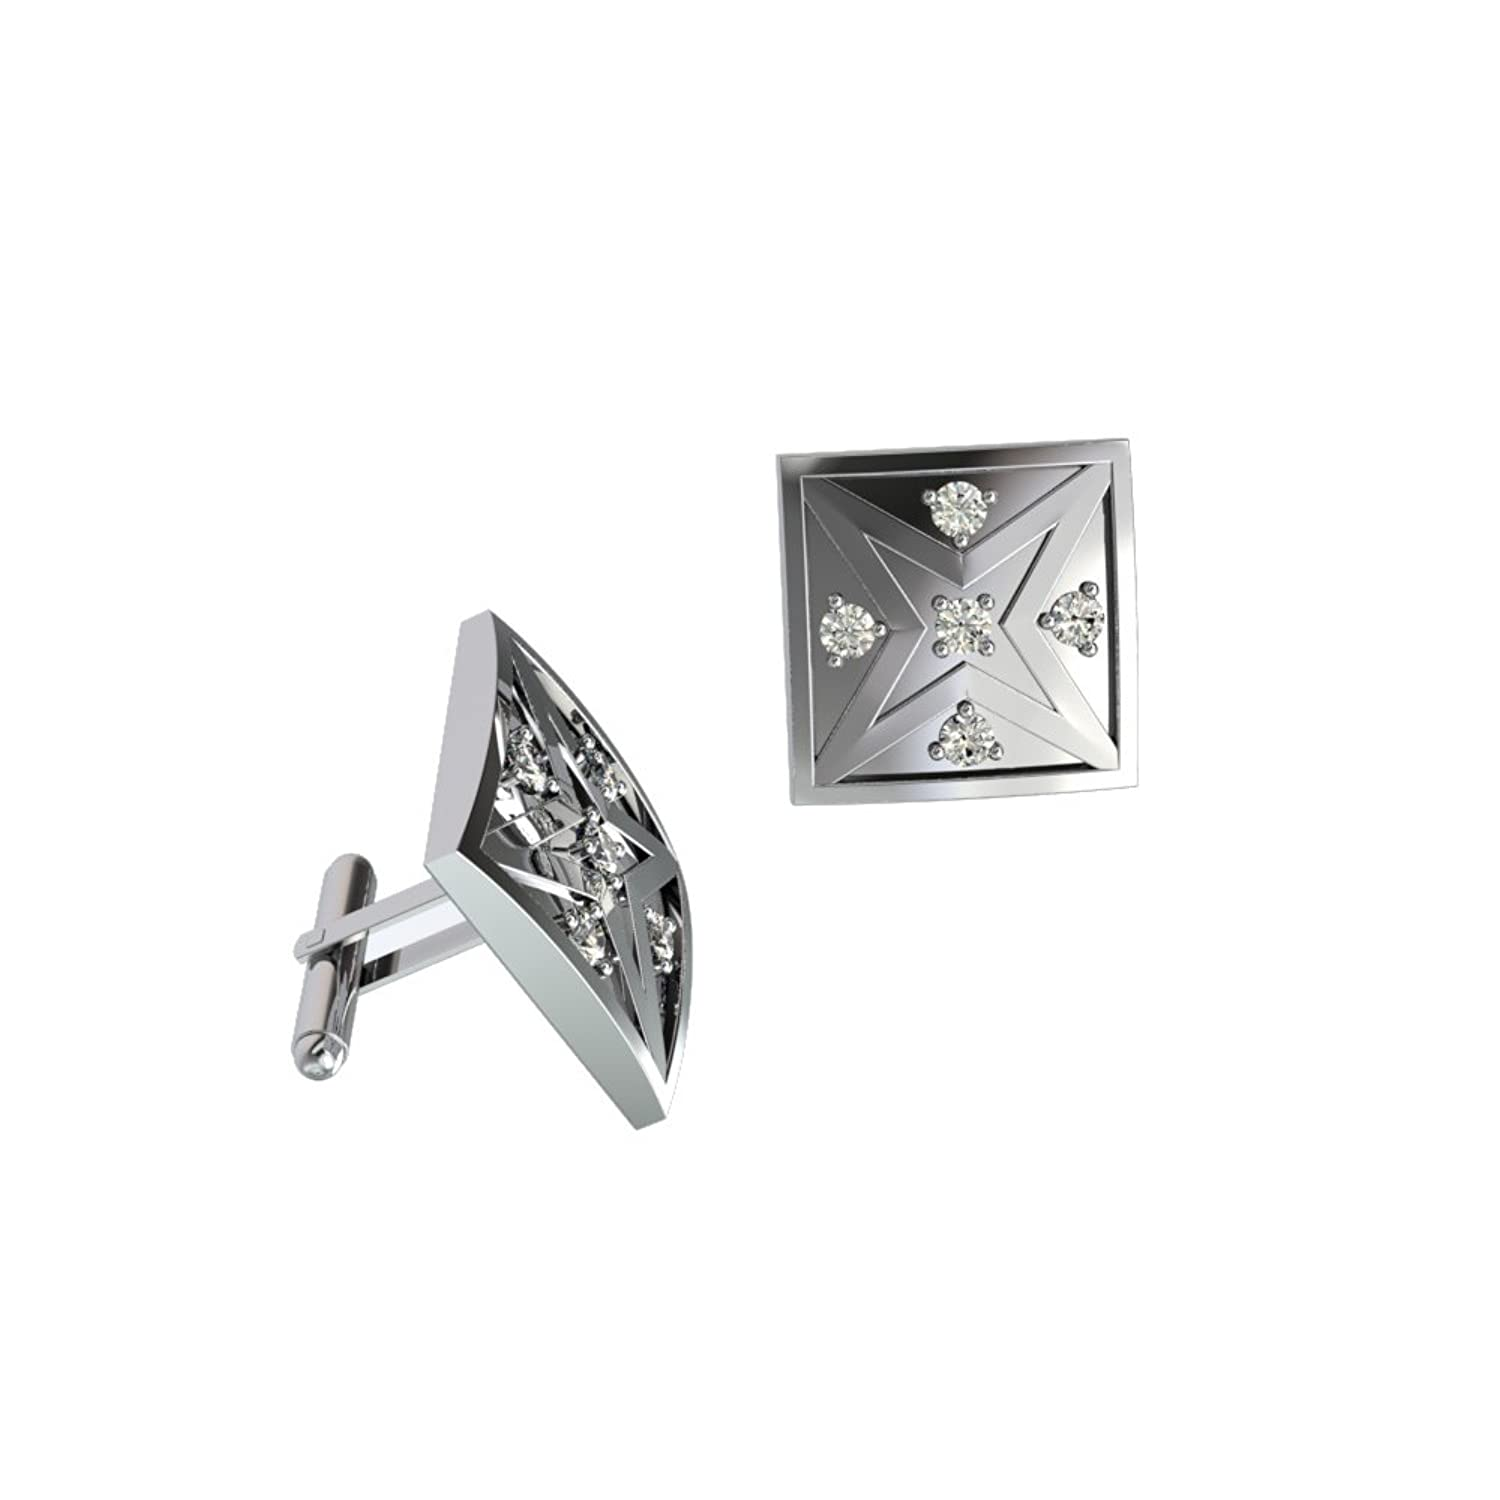 Diamond Cross Star Cuff links 10K Gold Cufflinks with 0.15 Ct Diamonds an Essential Accessory for Mens Formal Shirt / Suits